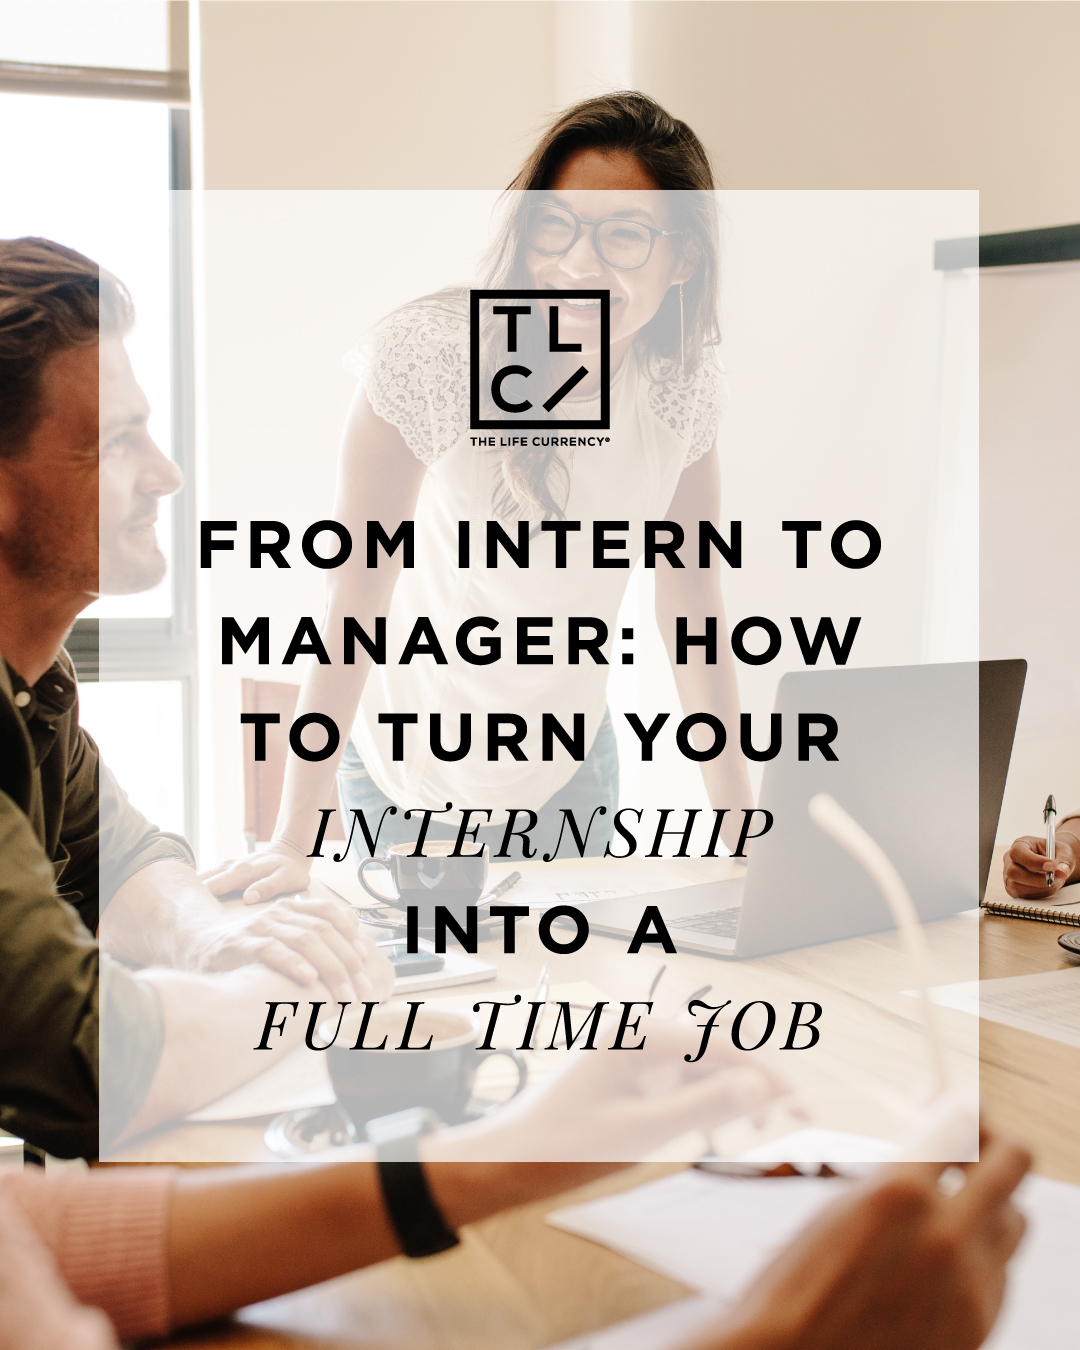 From Intern To Manager: How To Turn Your Internship Into A Full-Time Job